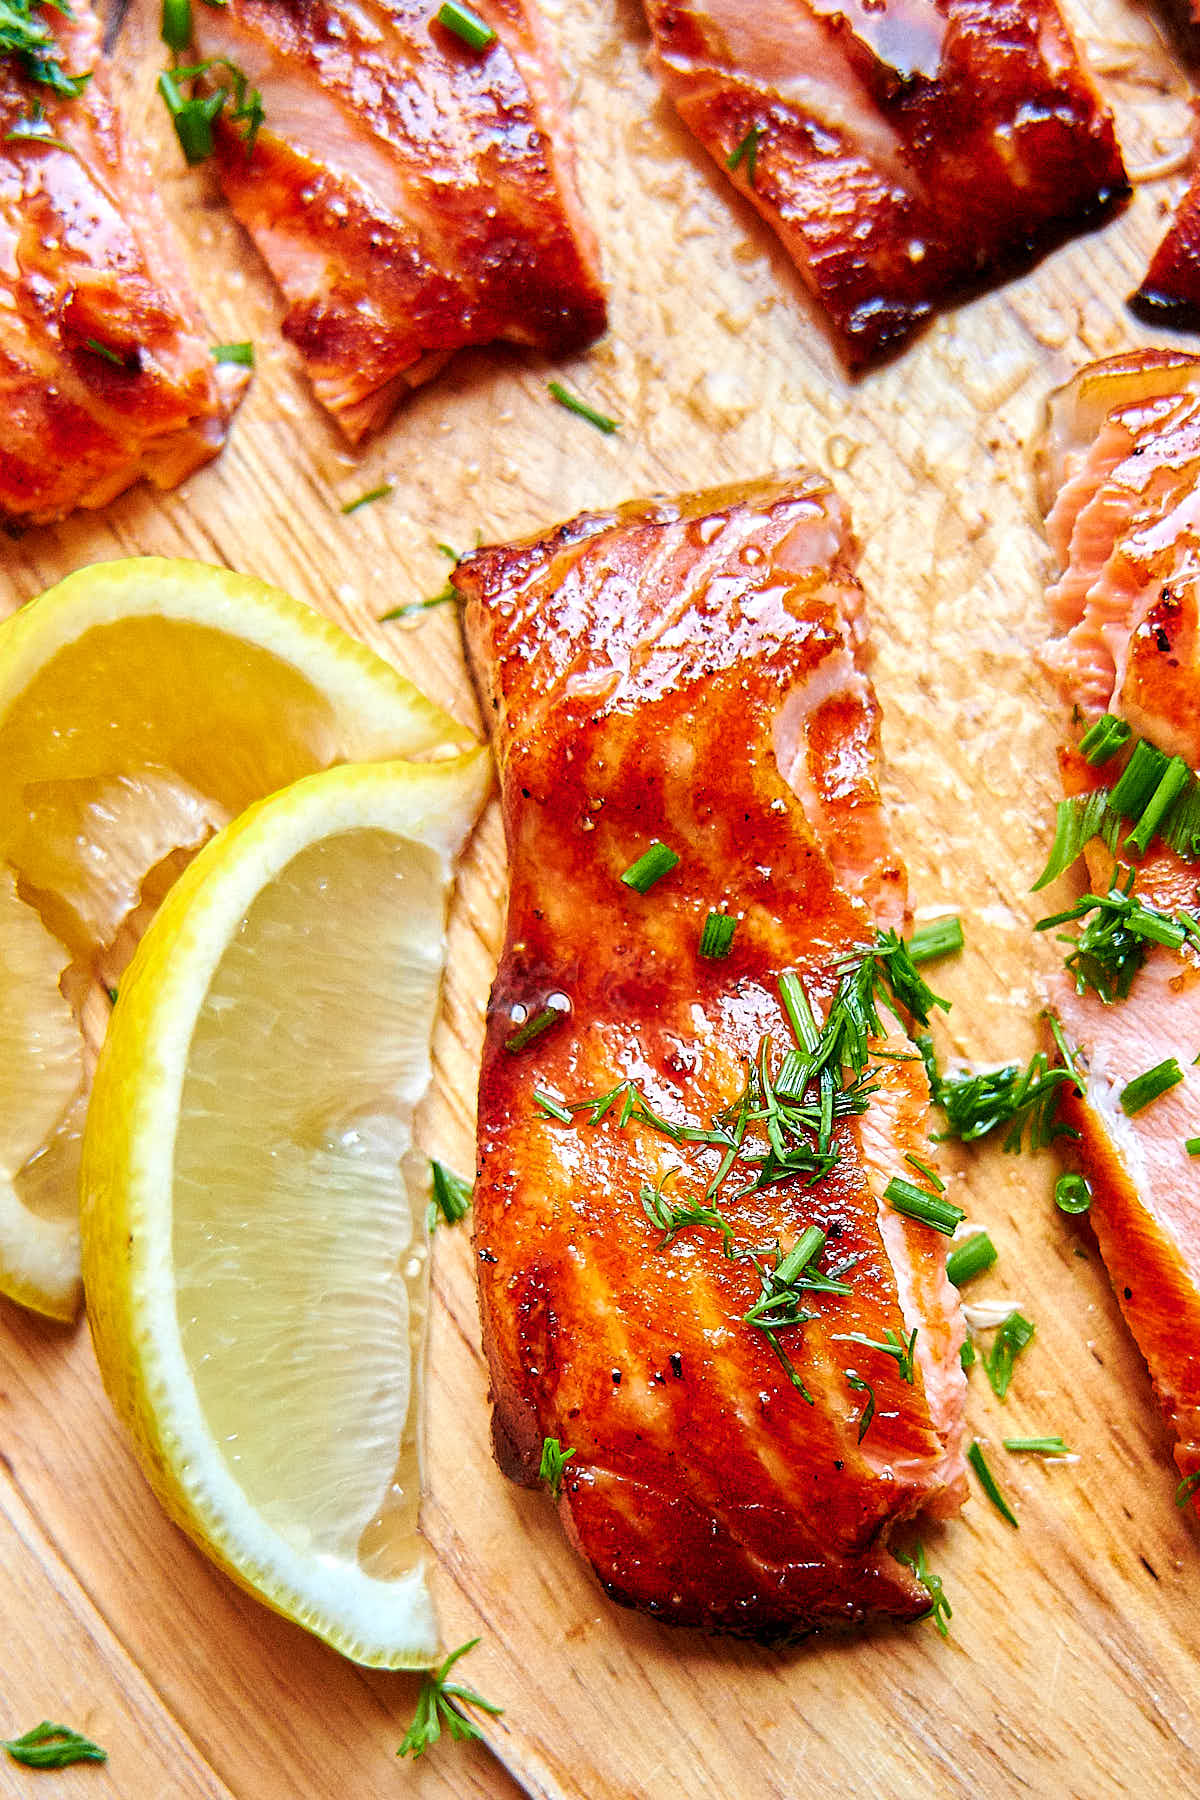 Close up of air fried salmon filet pieces with chopped dill on top, with lemon wedges on the side, on a cutting board.